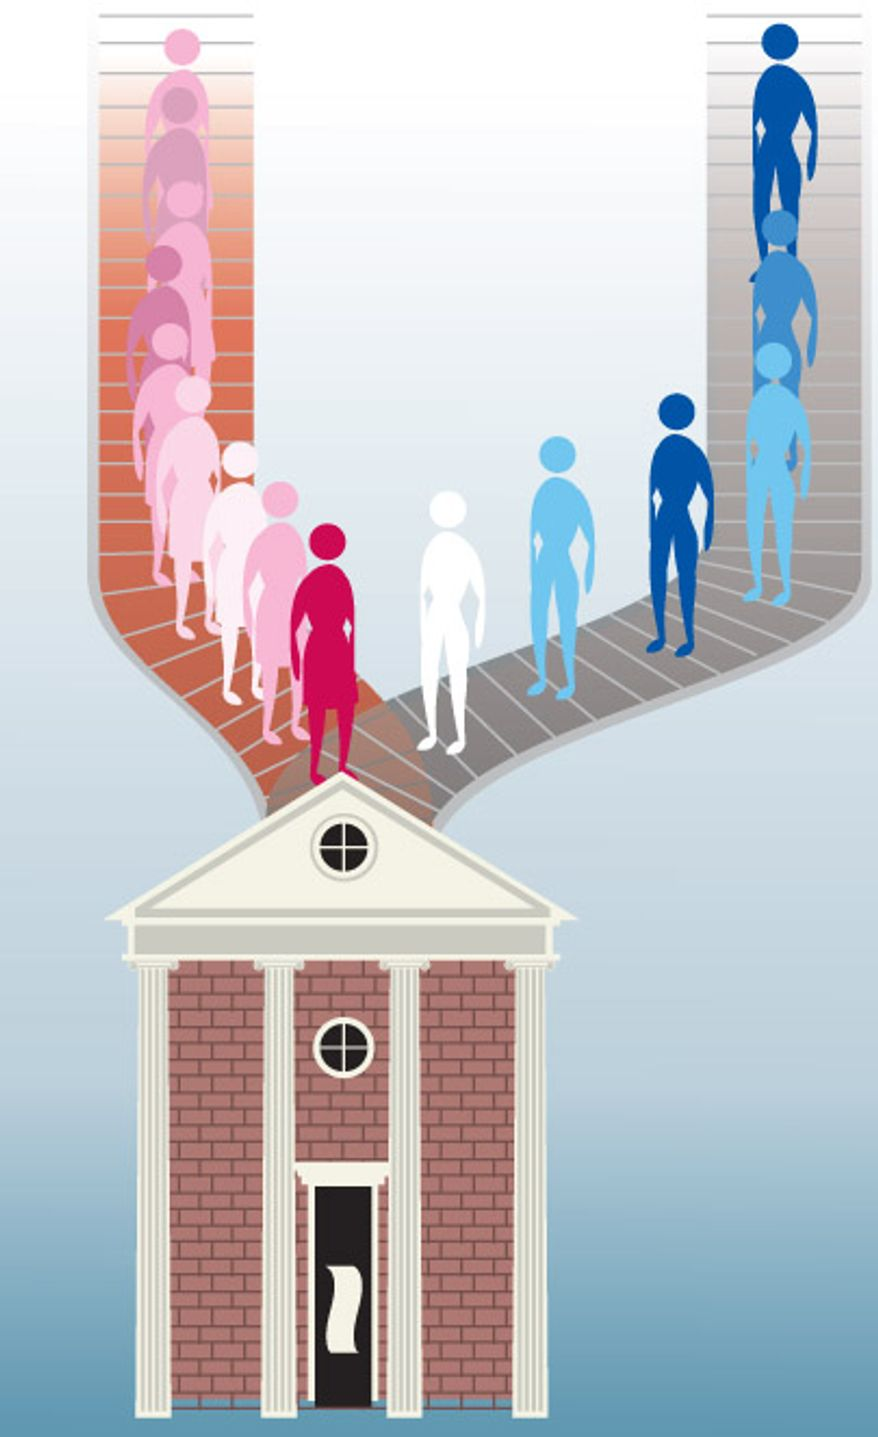 Illustration: Undergrads by Linas Garsys for The Washington Times